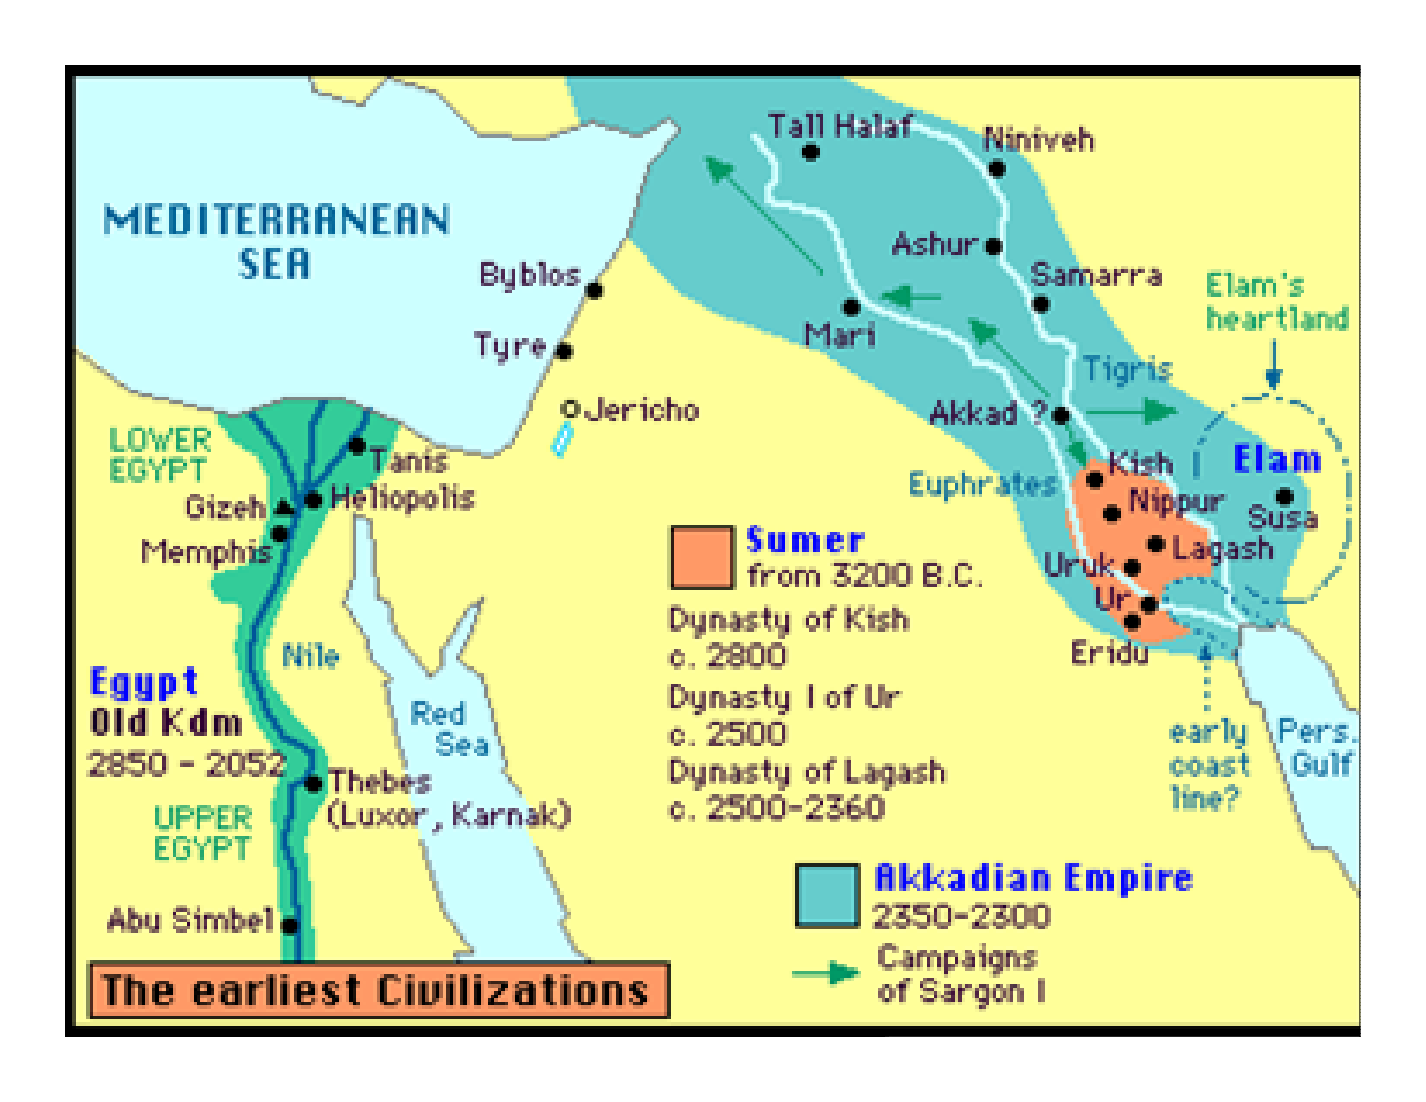 Kingdoms of Ancient civilizations 2500 BC -> Check this video: www on map of sumer, map of east coast united states, map of far east, map of florida east coast, map of greece, map of levant, map of middle east, map of near east today, map of mesopotamia, map of english, map of modern near east, map of fertile crescent, map of syria, map of north east coast, map of hotels near disneyland, map of babylonia, map of paul's journeys, map of near east in biblical times, map of phoenicia, map of assyria,